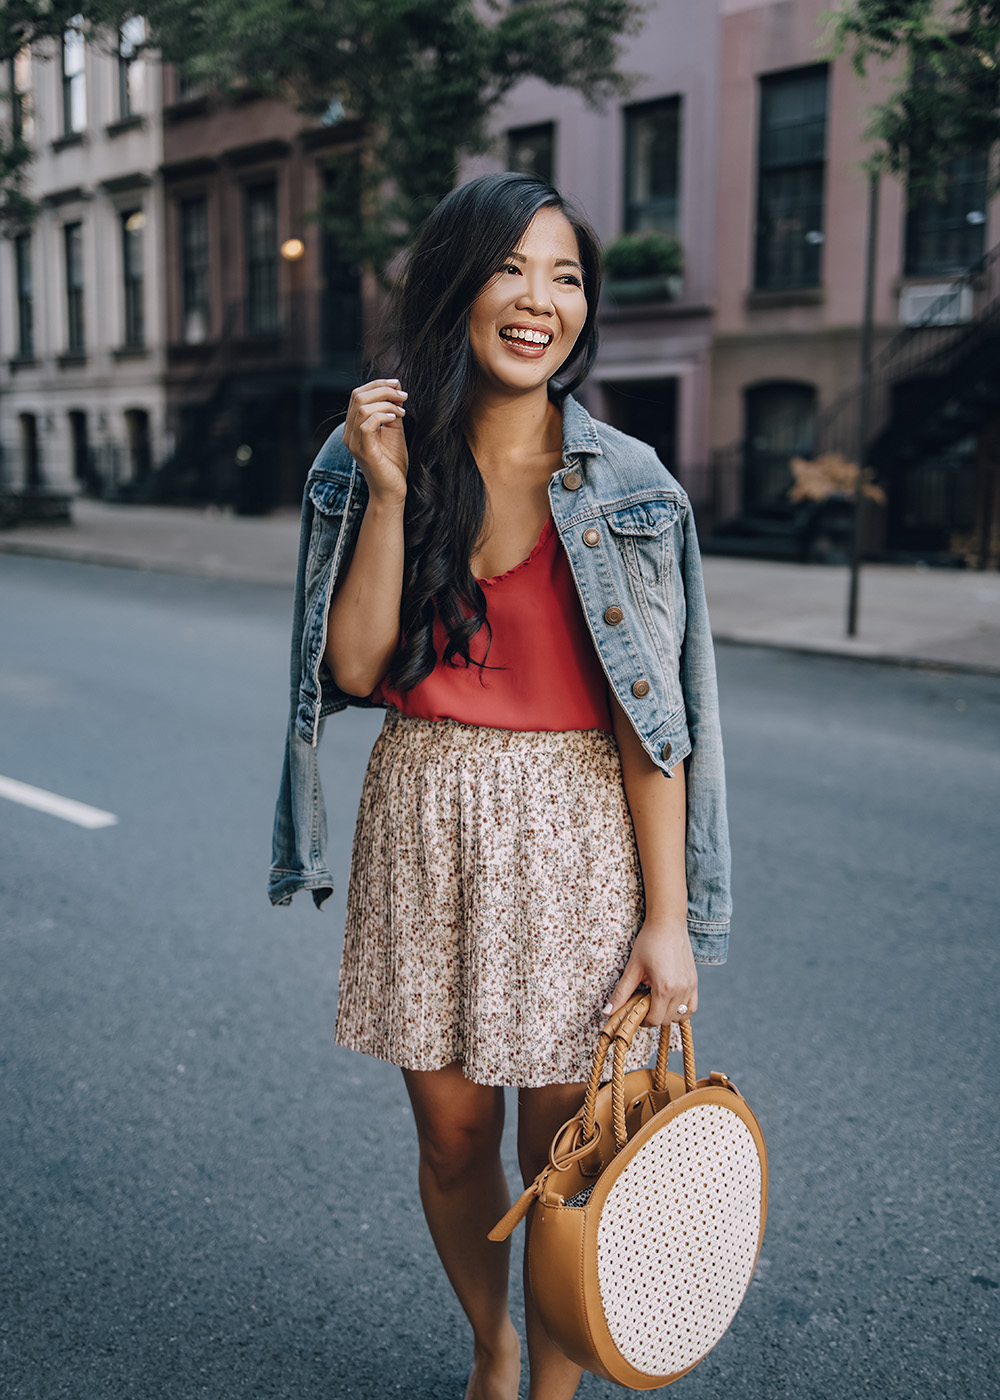 Casual Summer Outfit Ideas for Women: Denim Jacket & Floral Shorts